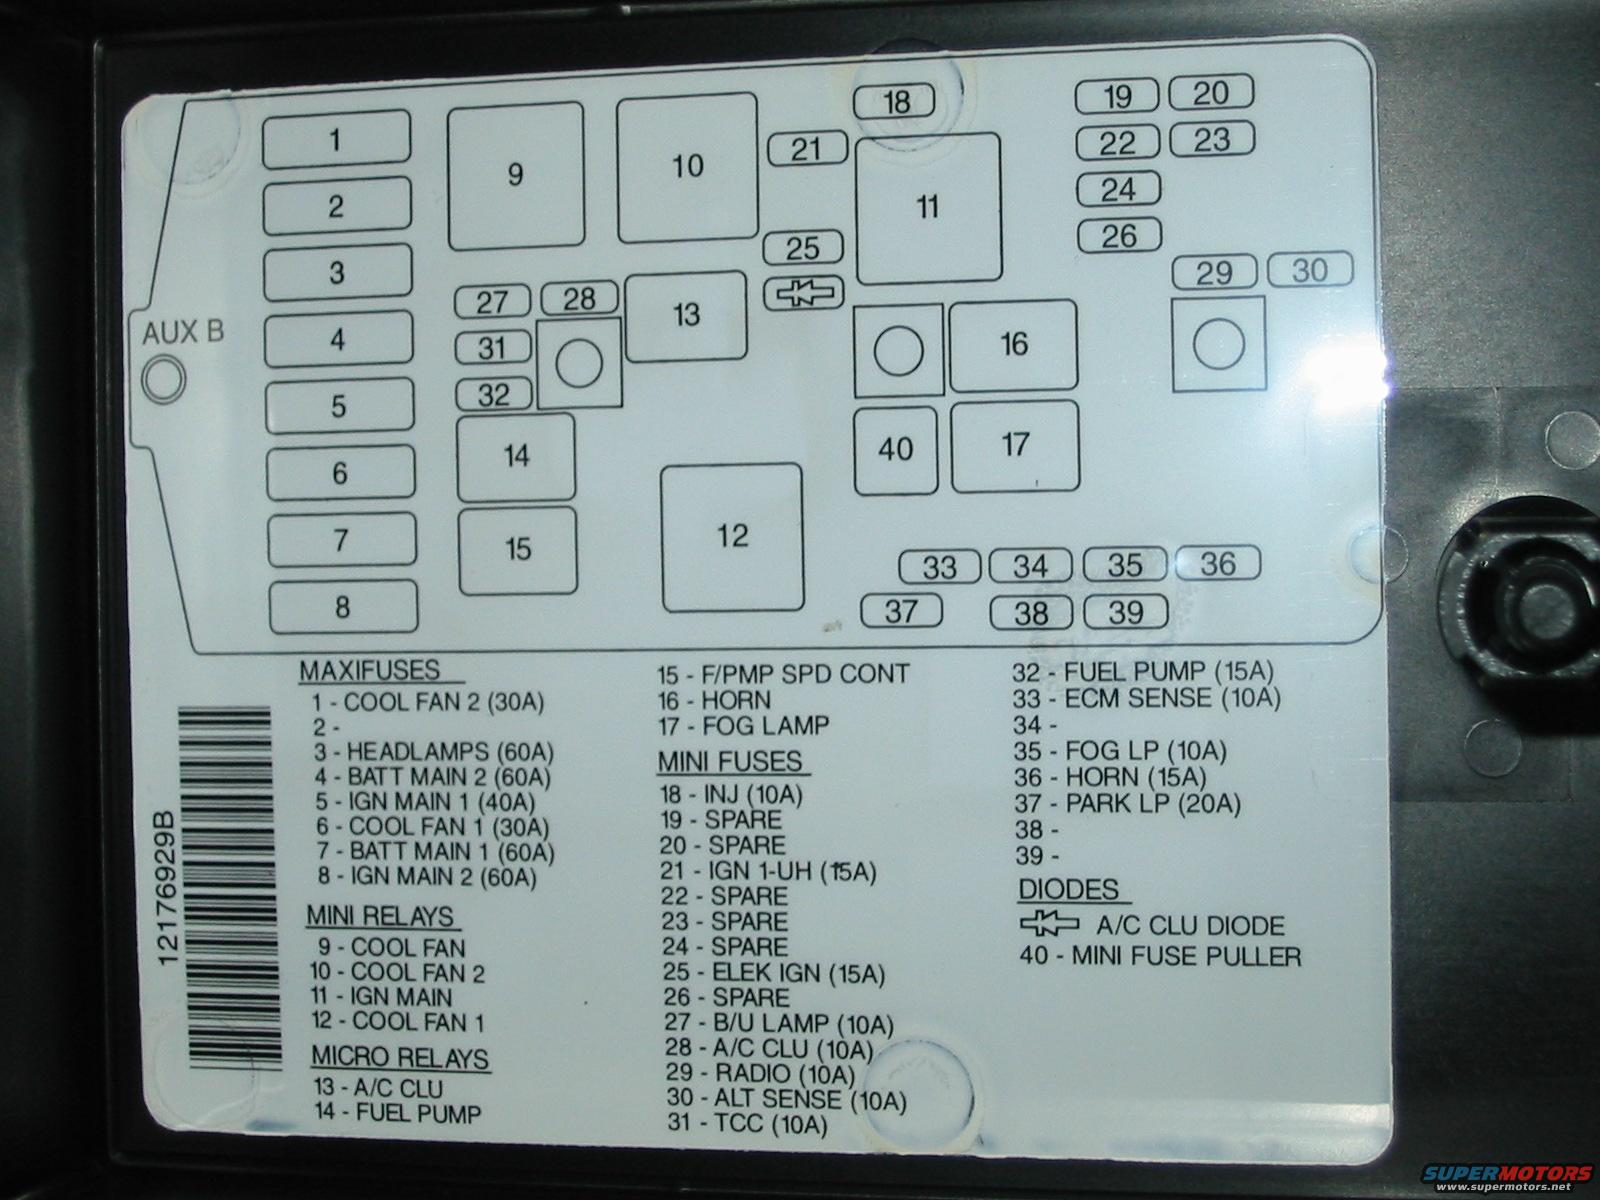 2007 Nissan Frontier Fuse Box Diagram Wiring Library 2001 Rav4 Blower Motor 98 Grand Prix Resistorblower And Relay 2005